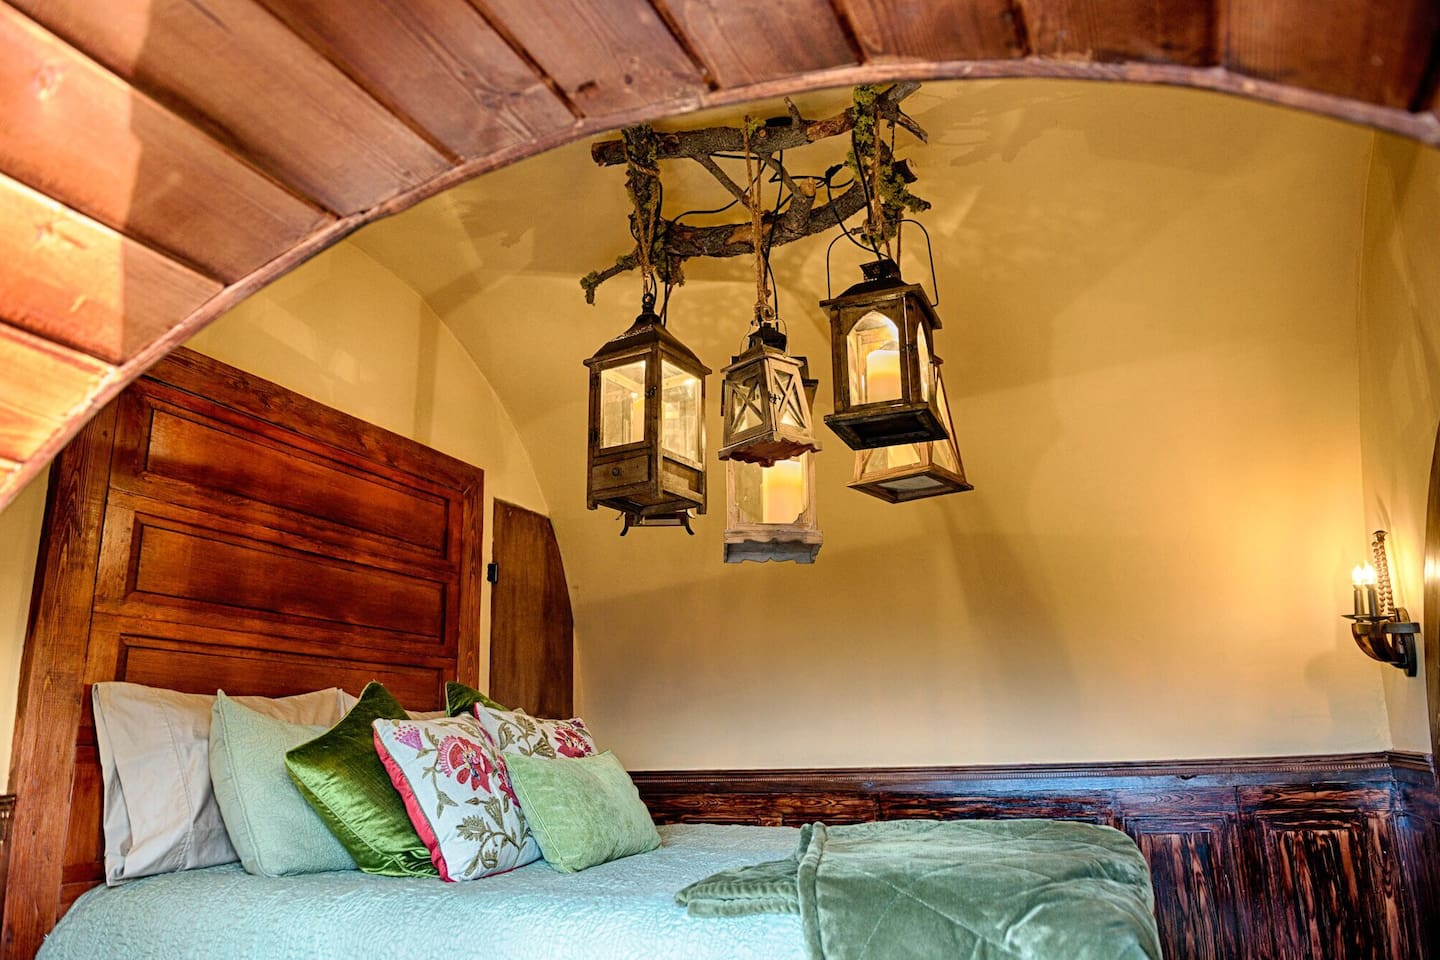 This charmingly romantic getaway features a bed and chandelier lovingly crafted by the home owner.